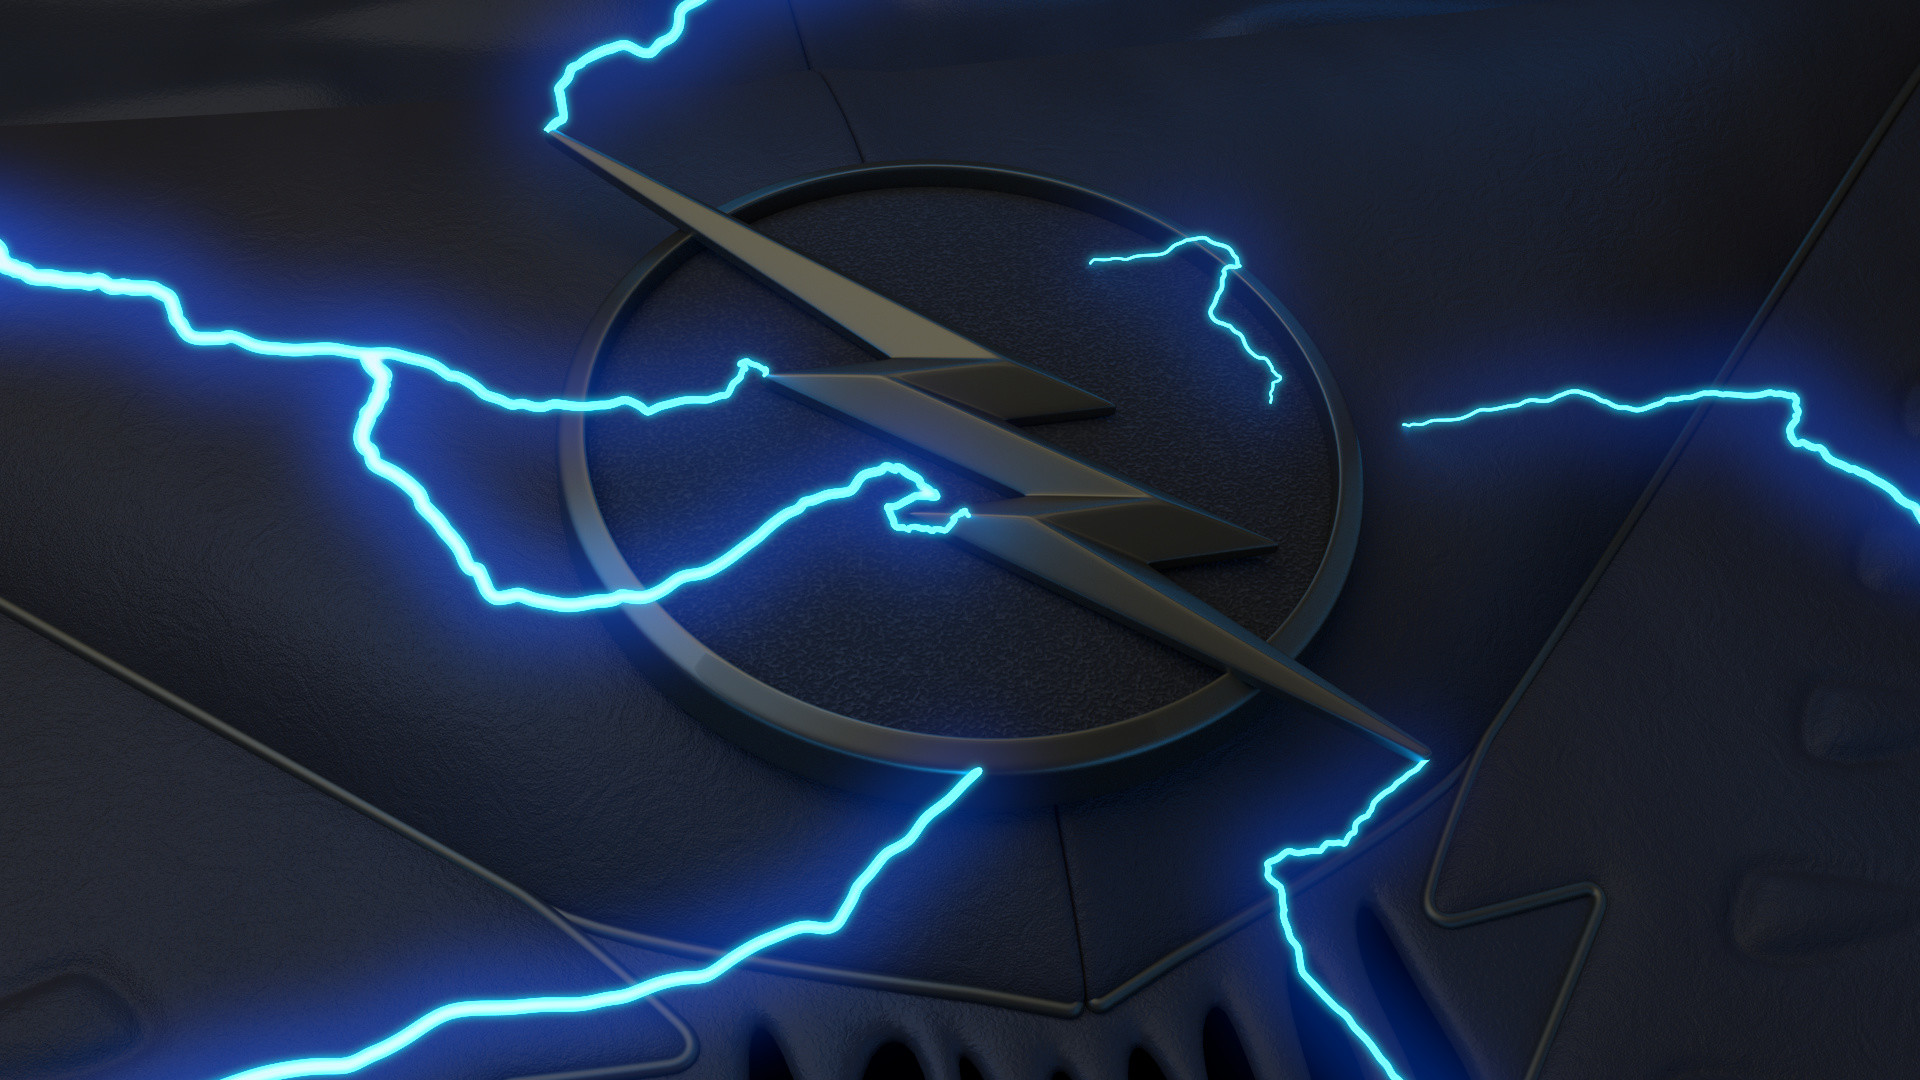 Electrified 3D Zoom wallpaper [1080p] (more sizes and another style in  comments) …